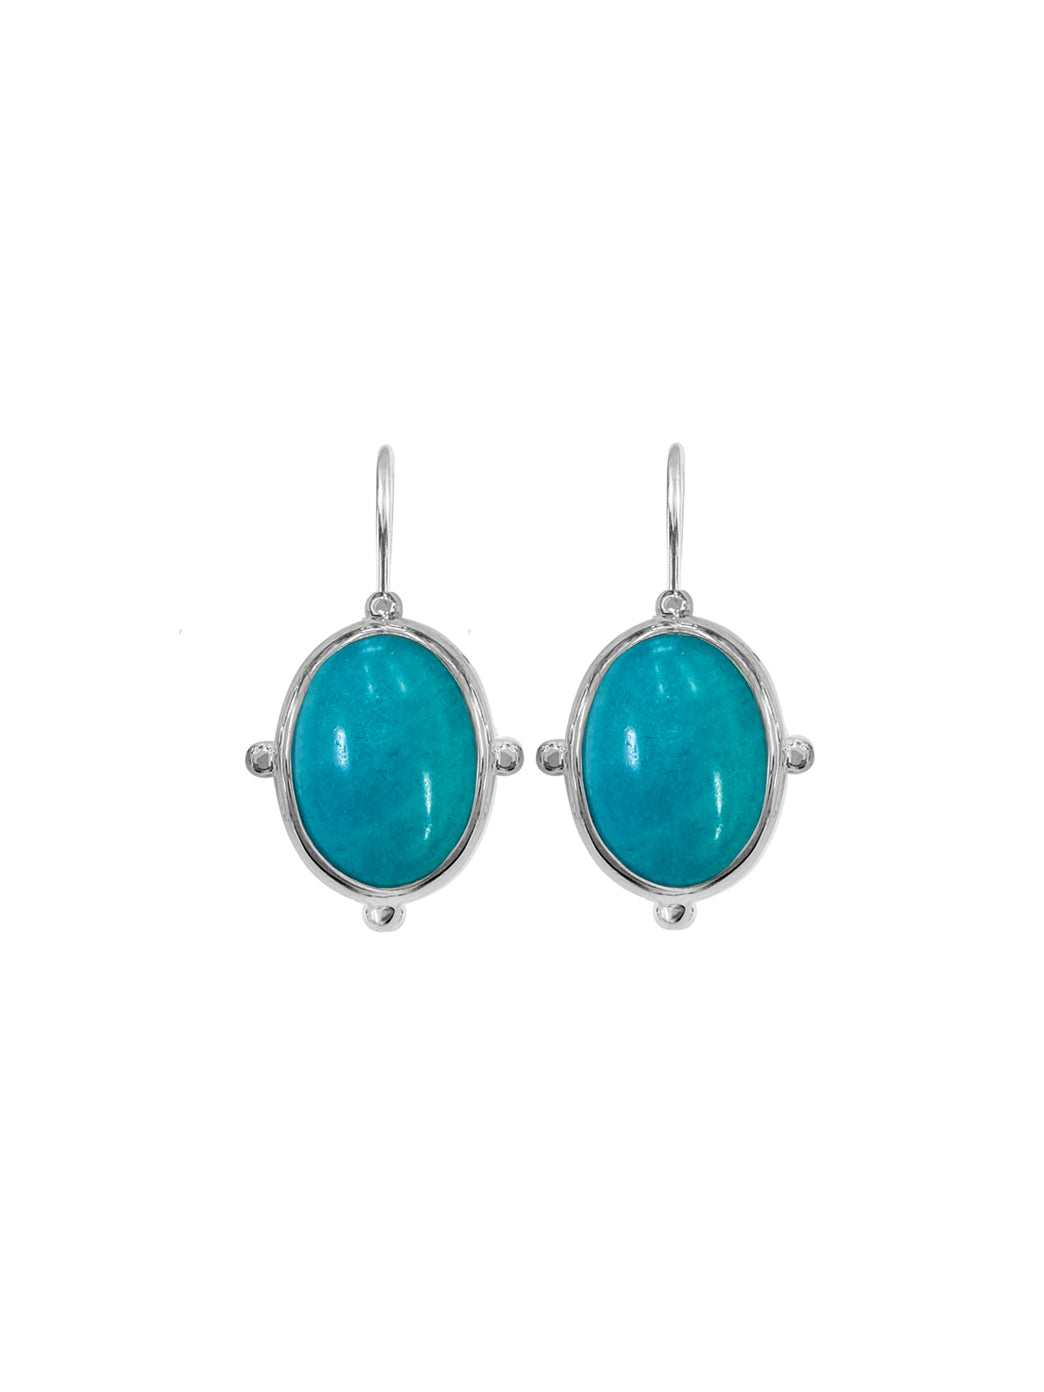 Fiorina Jewellery Oval Button Earrings Amazonite